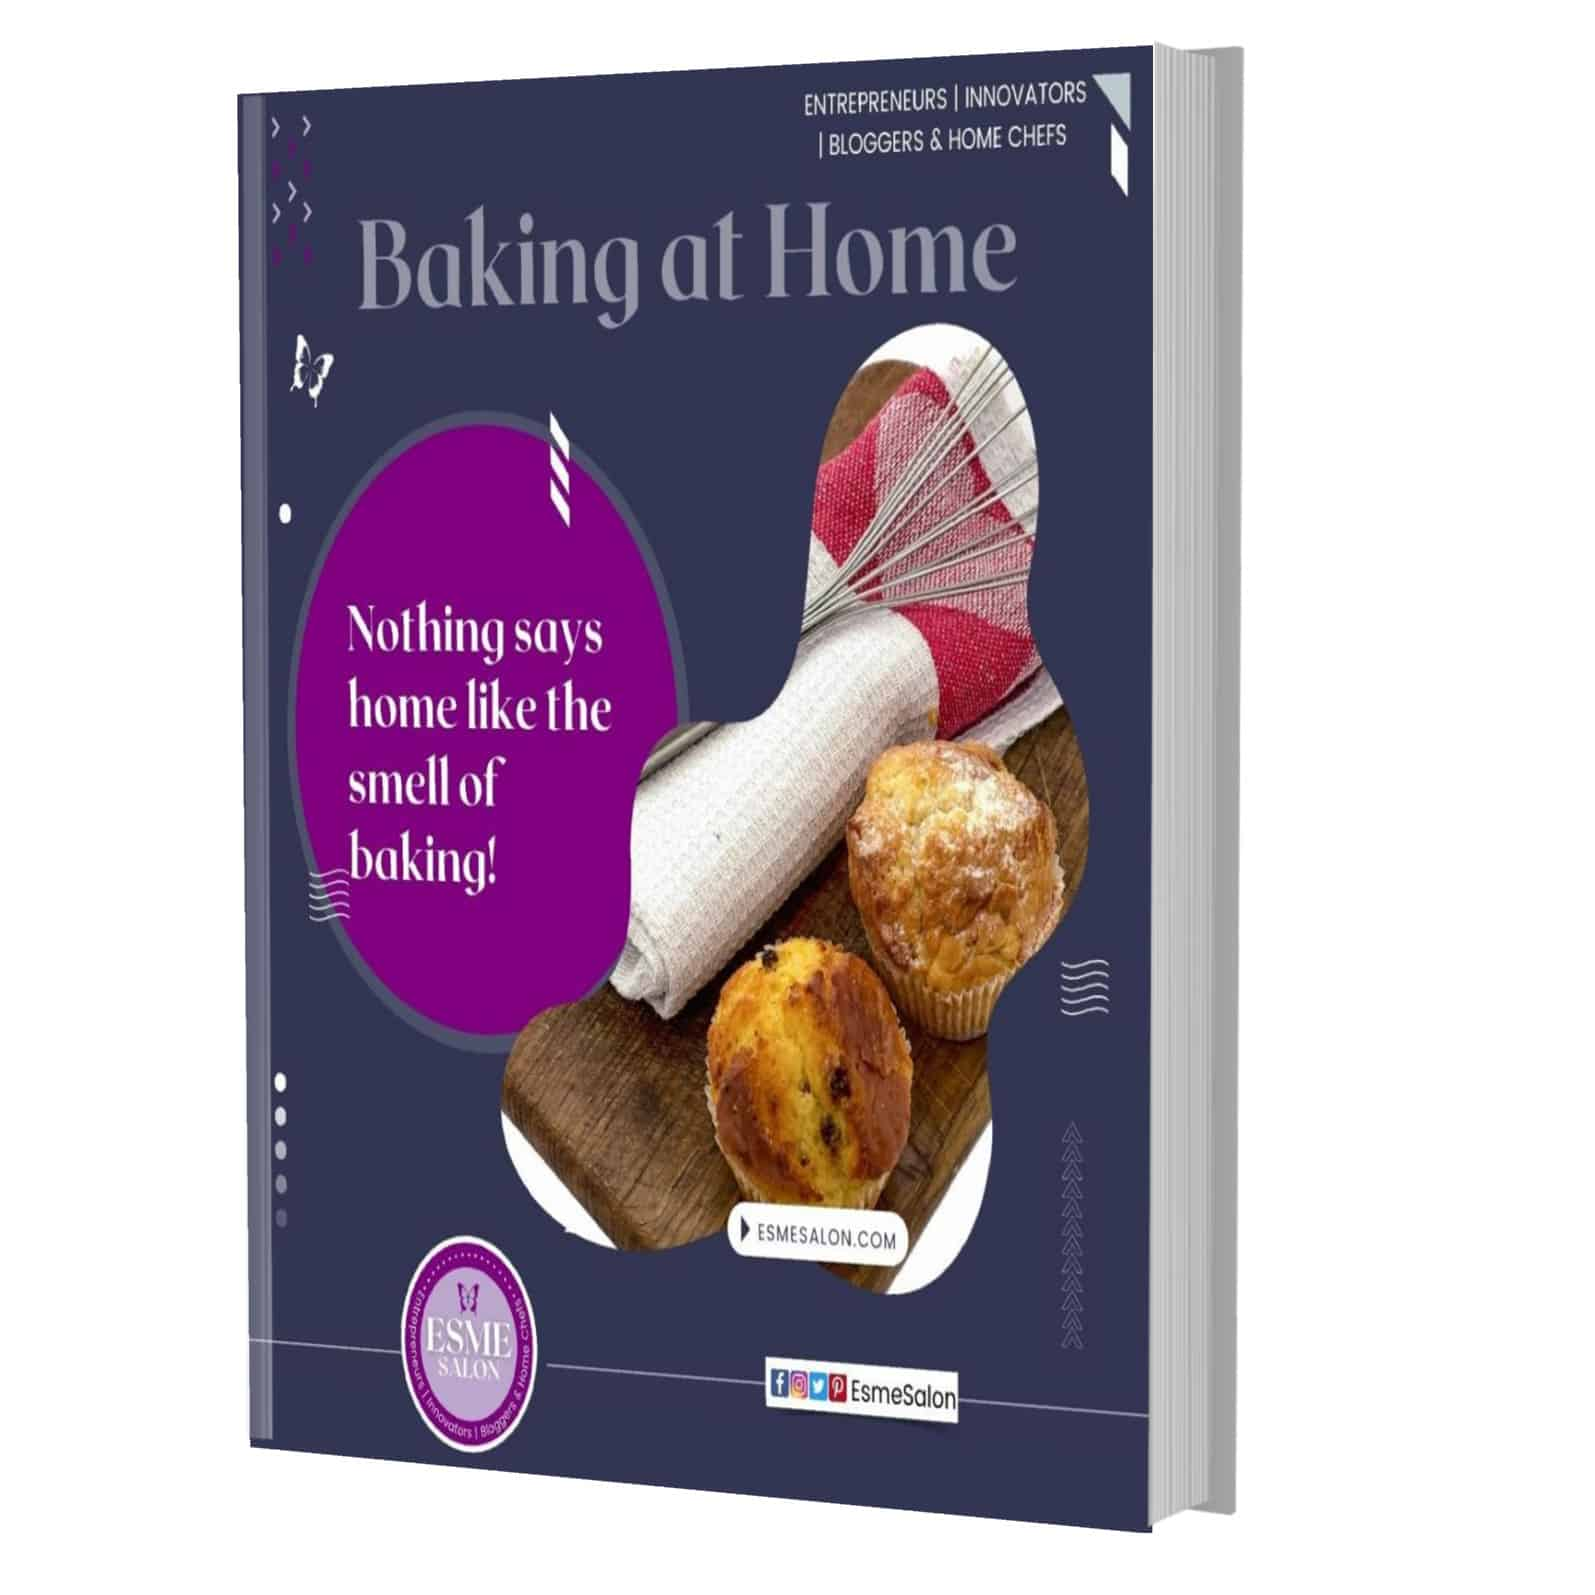 """Baking at Home eBook in grey with image of egg whisk, and muffins with a red and white tea towel and stating """"Nothing says home like the smell of baking!"""""""